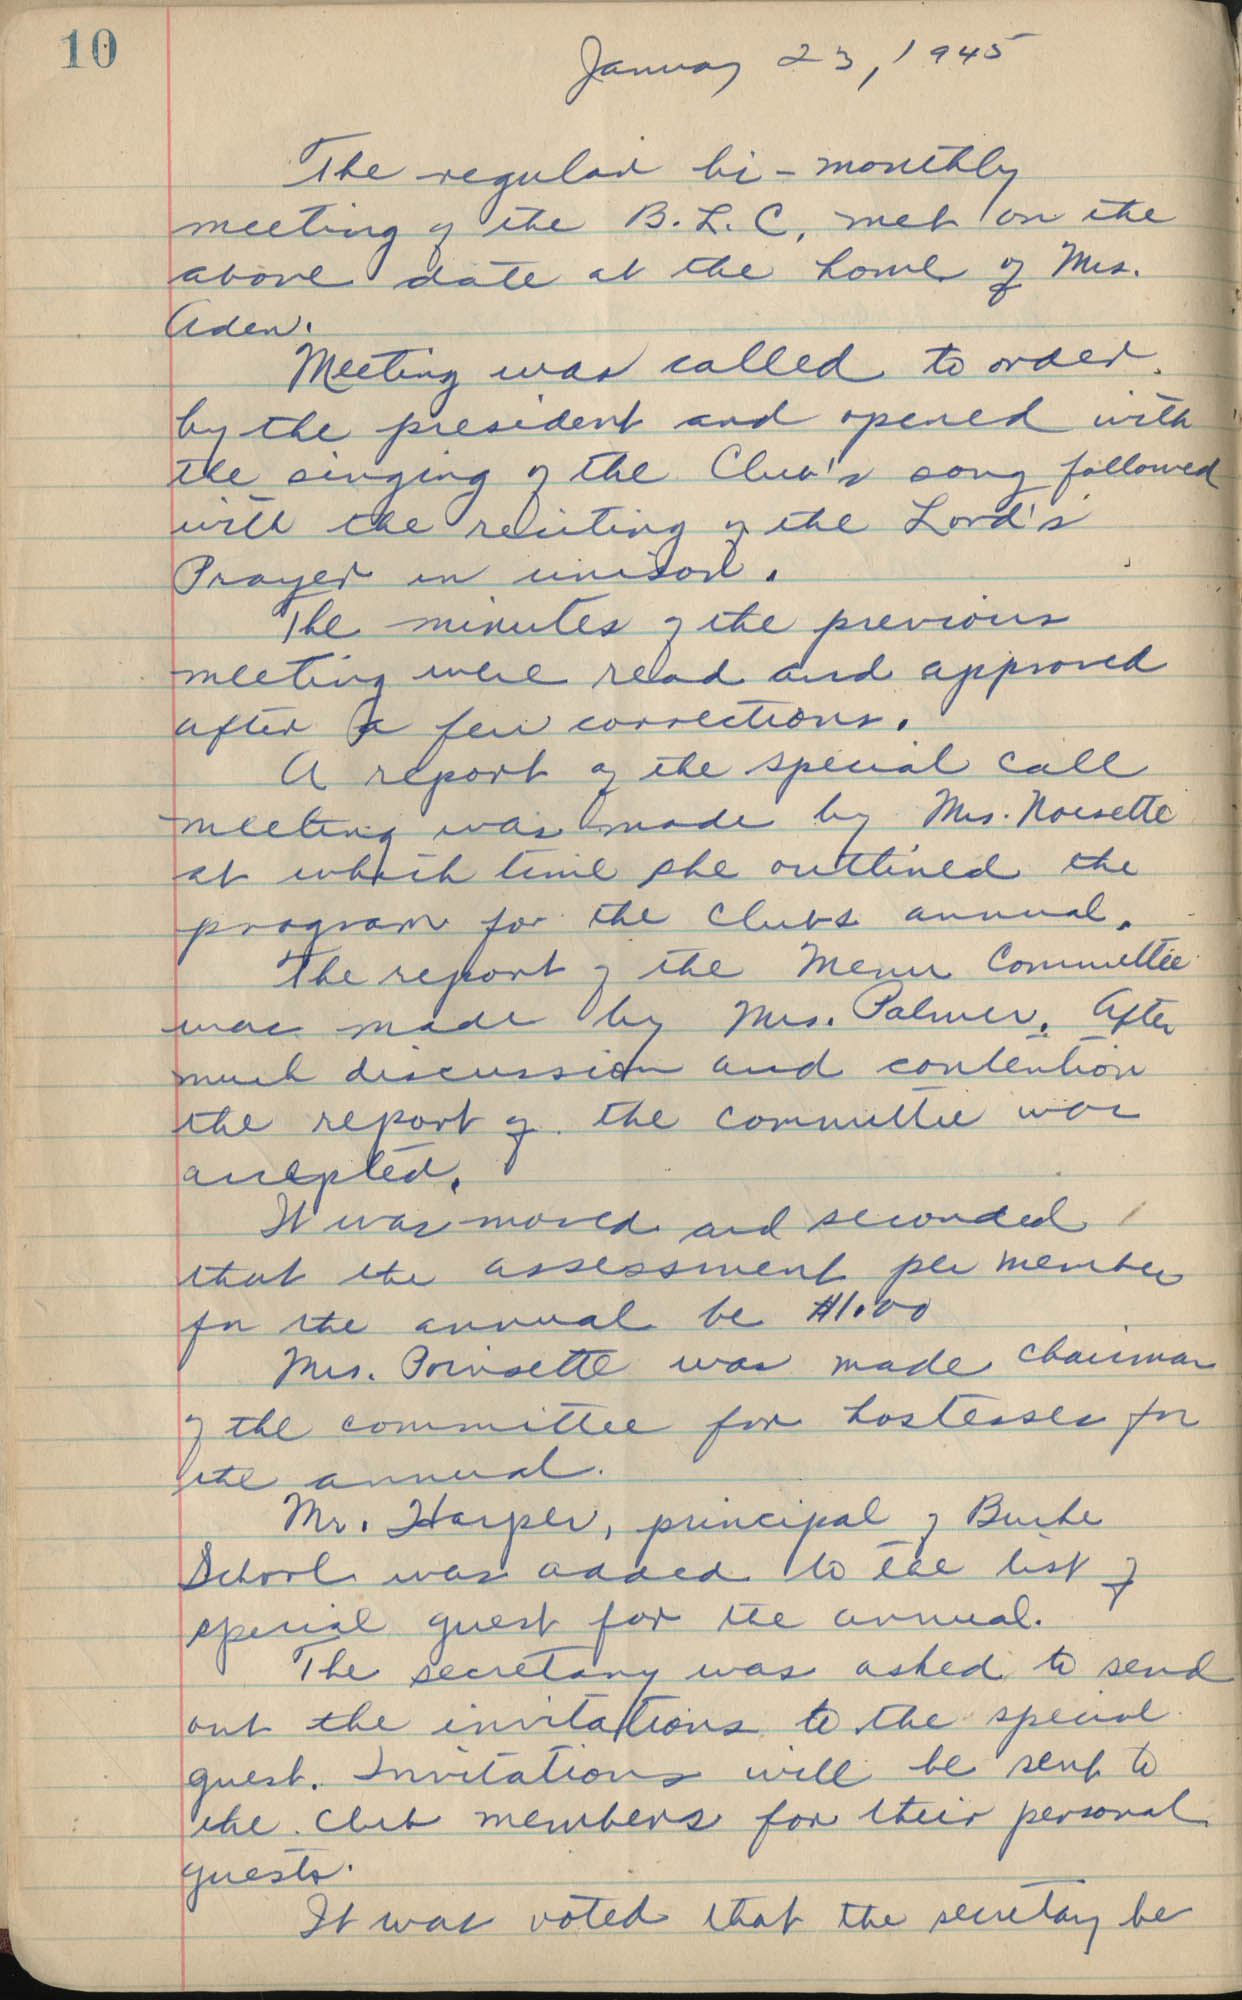 Minutes, Book Lovers' Club, 1944-1958, Page 10